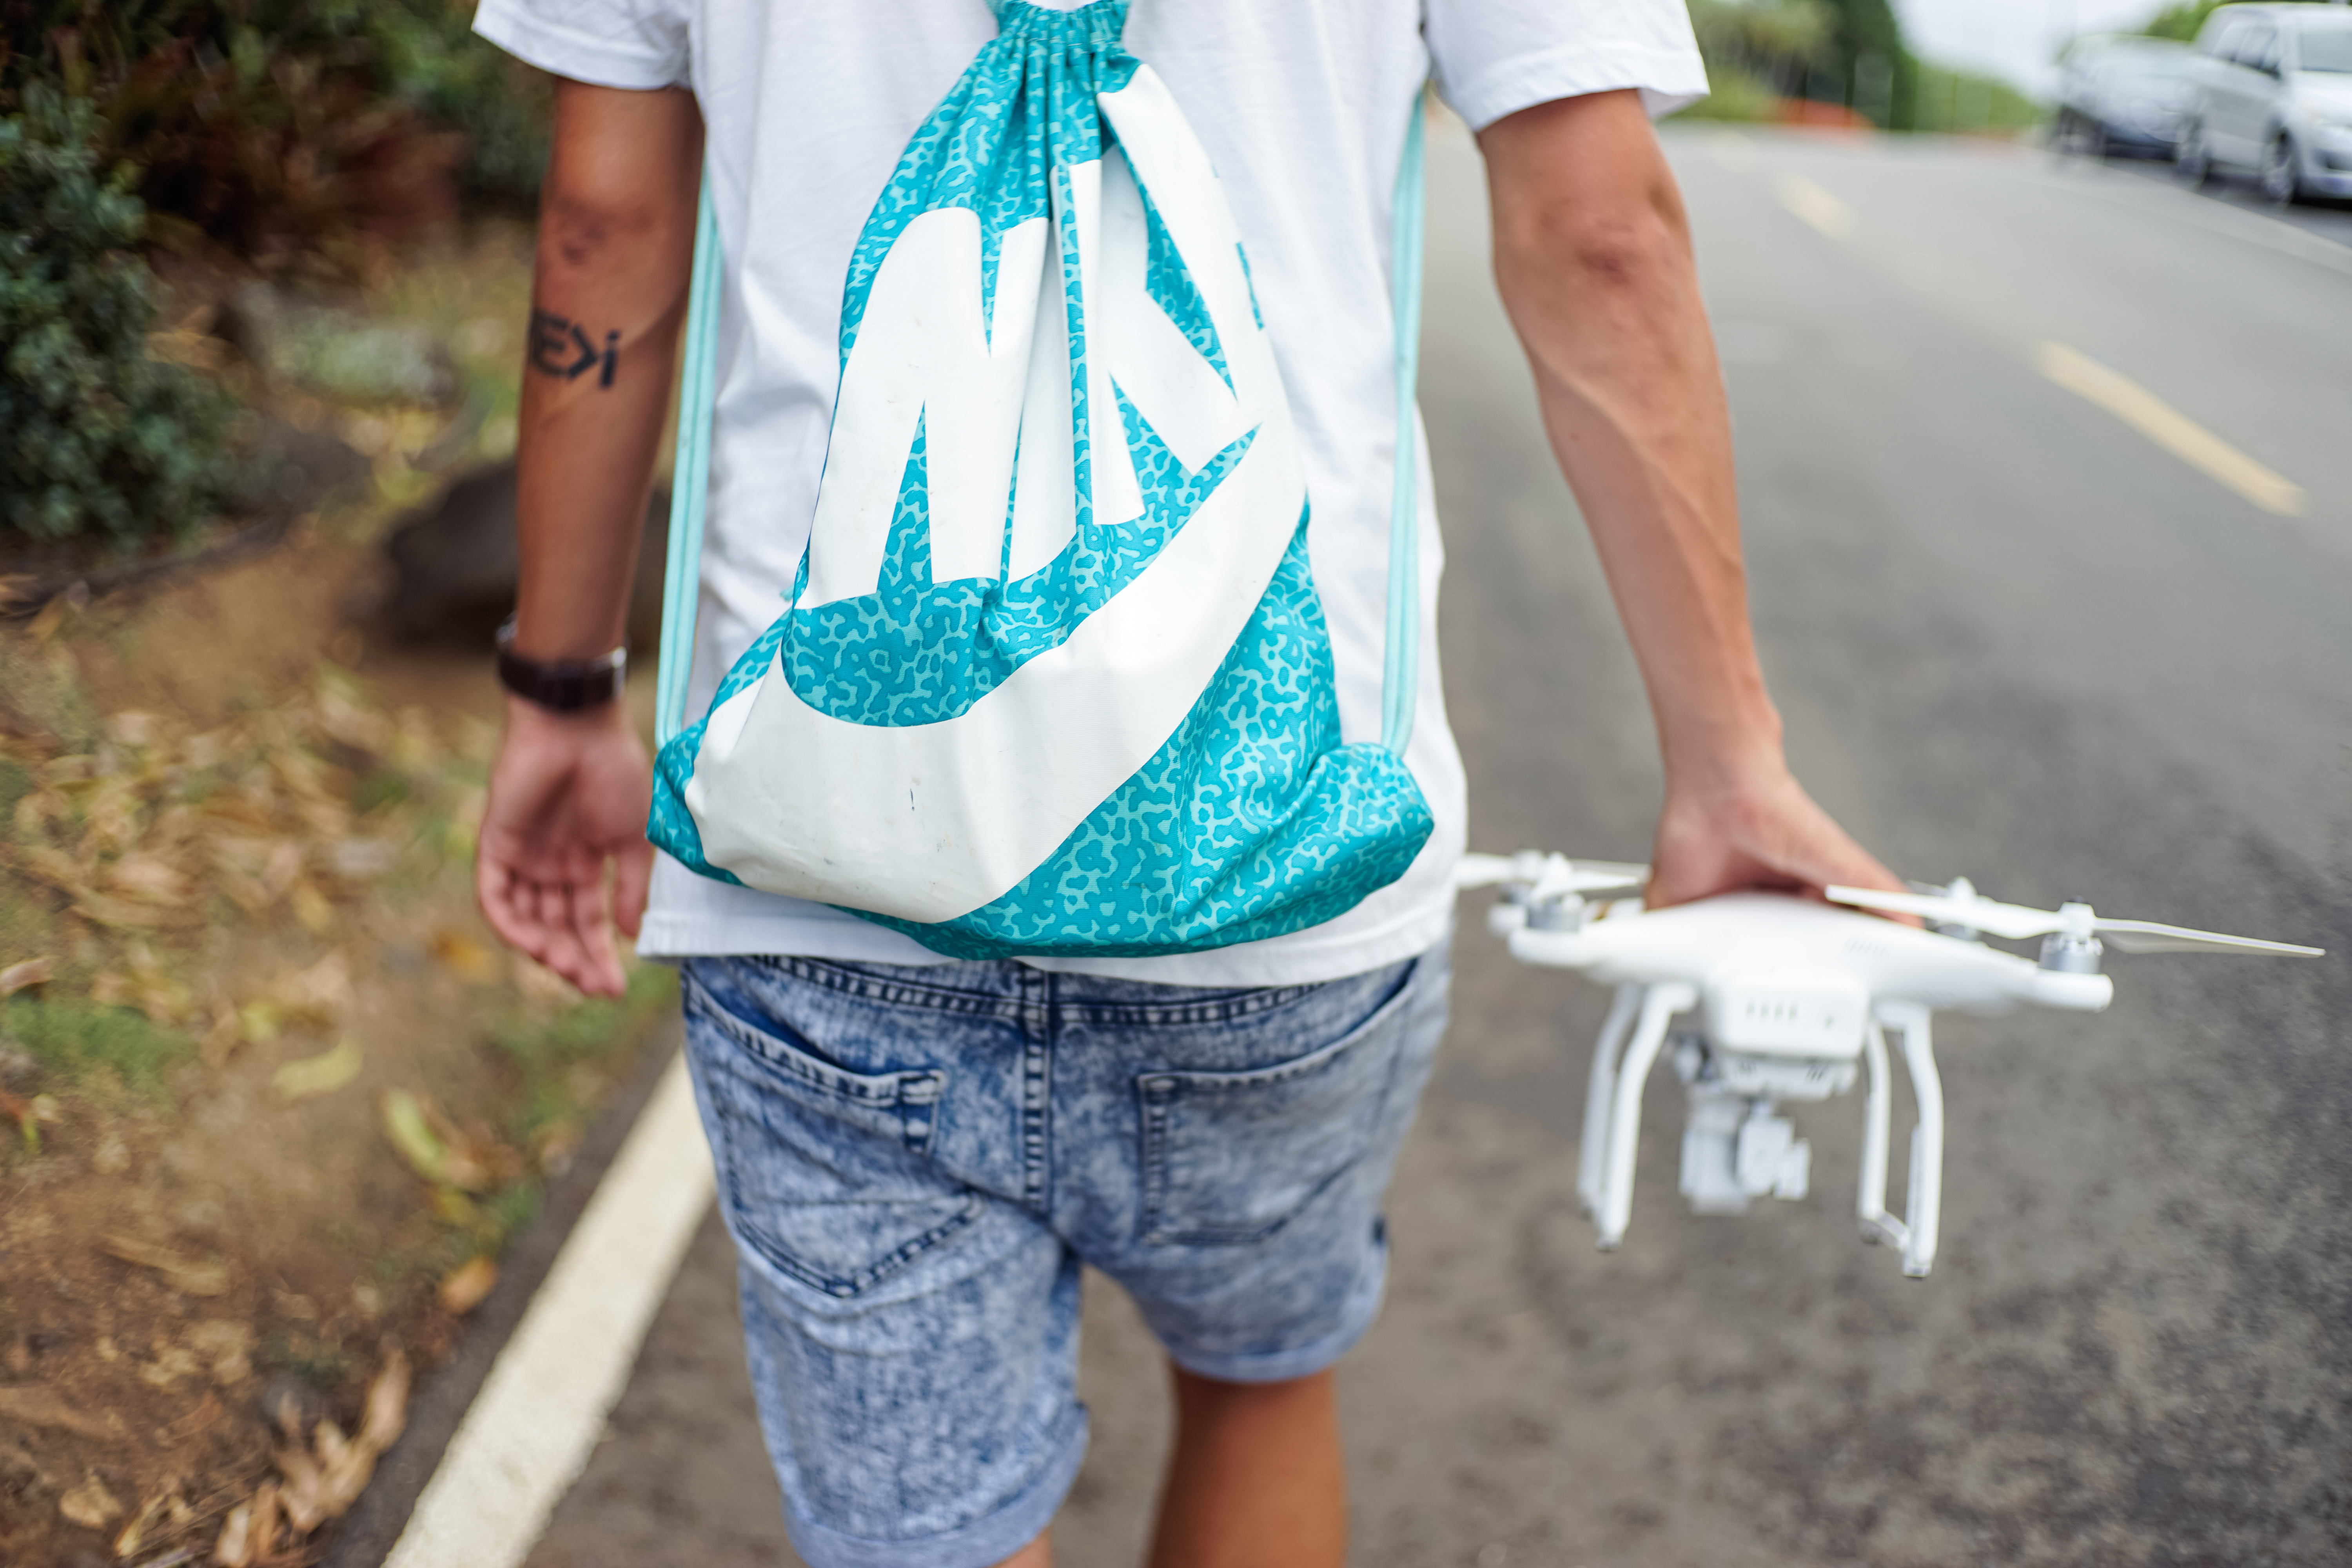 Drone Control Systems is Growing a Community of Responsible Drone Owners